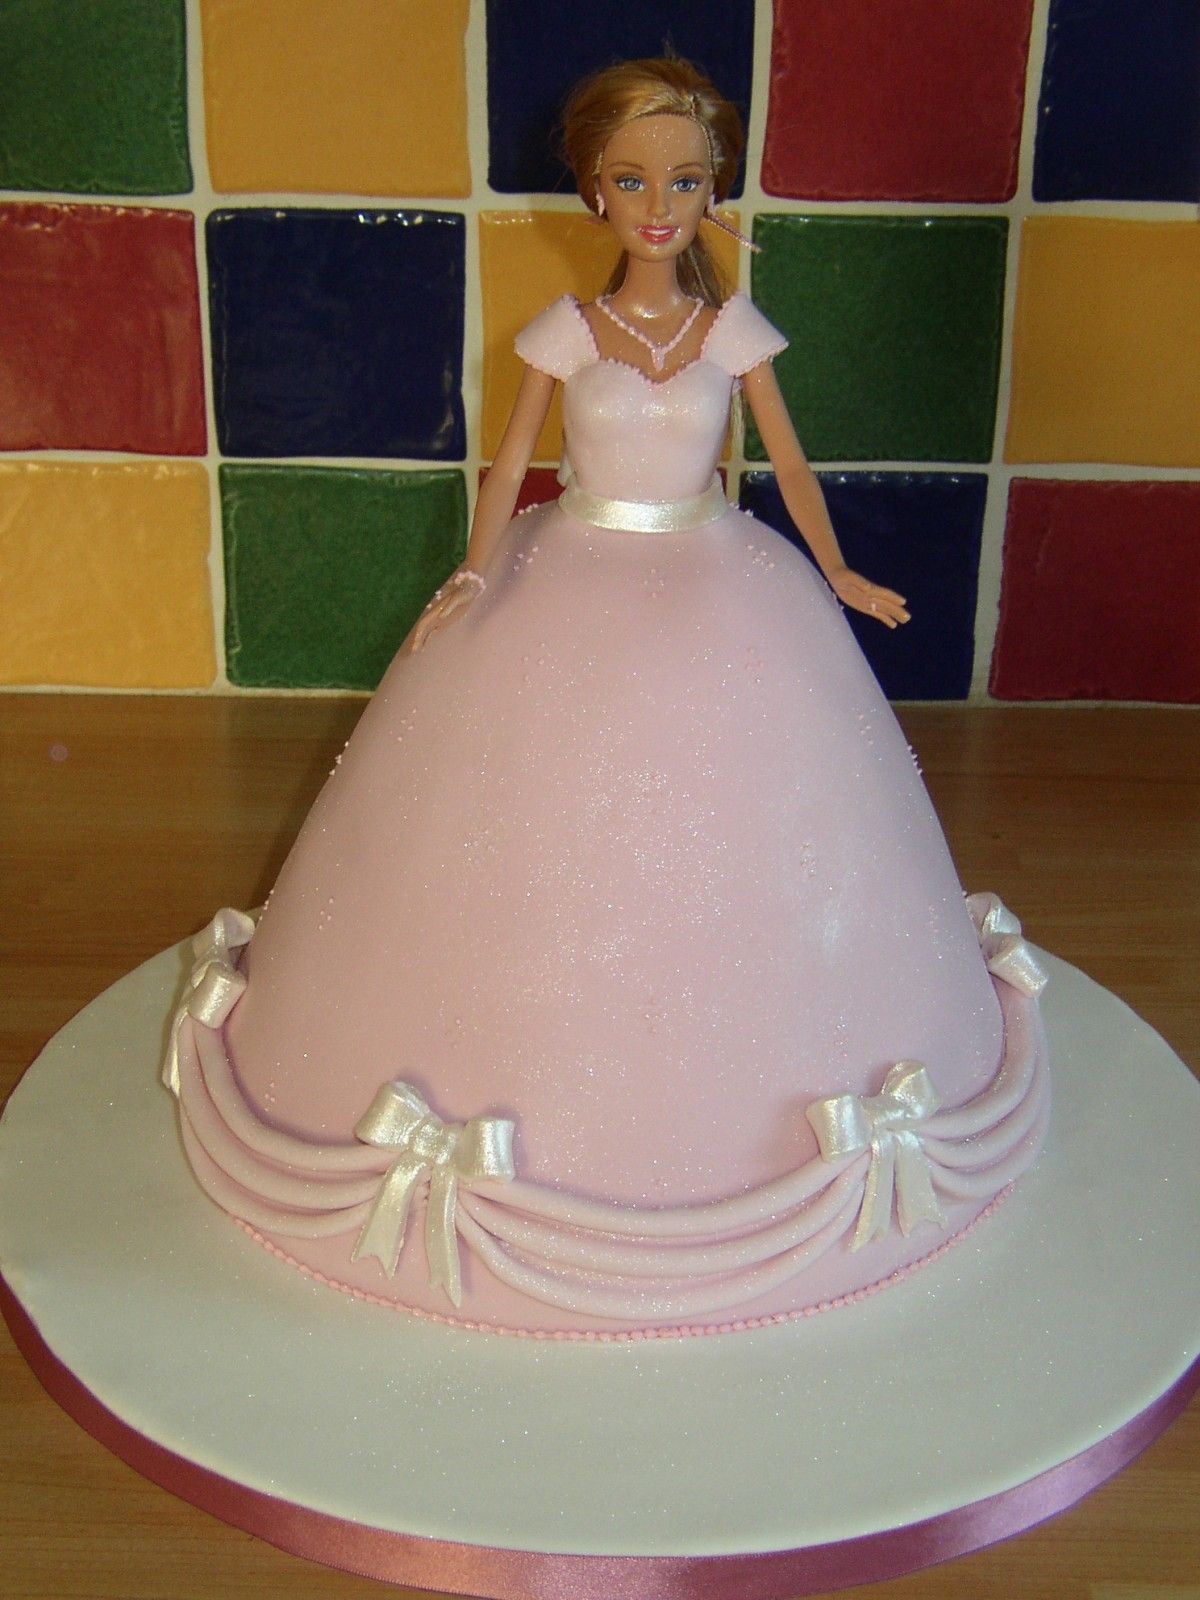 Doll Cakes For Girls Barbie Doll Princess Birthday Cake - Birthday cake doll designs